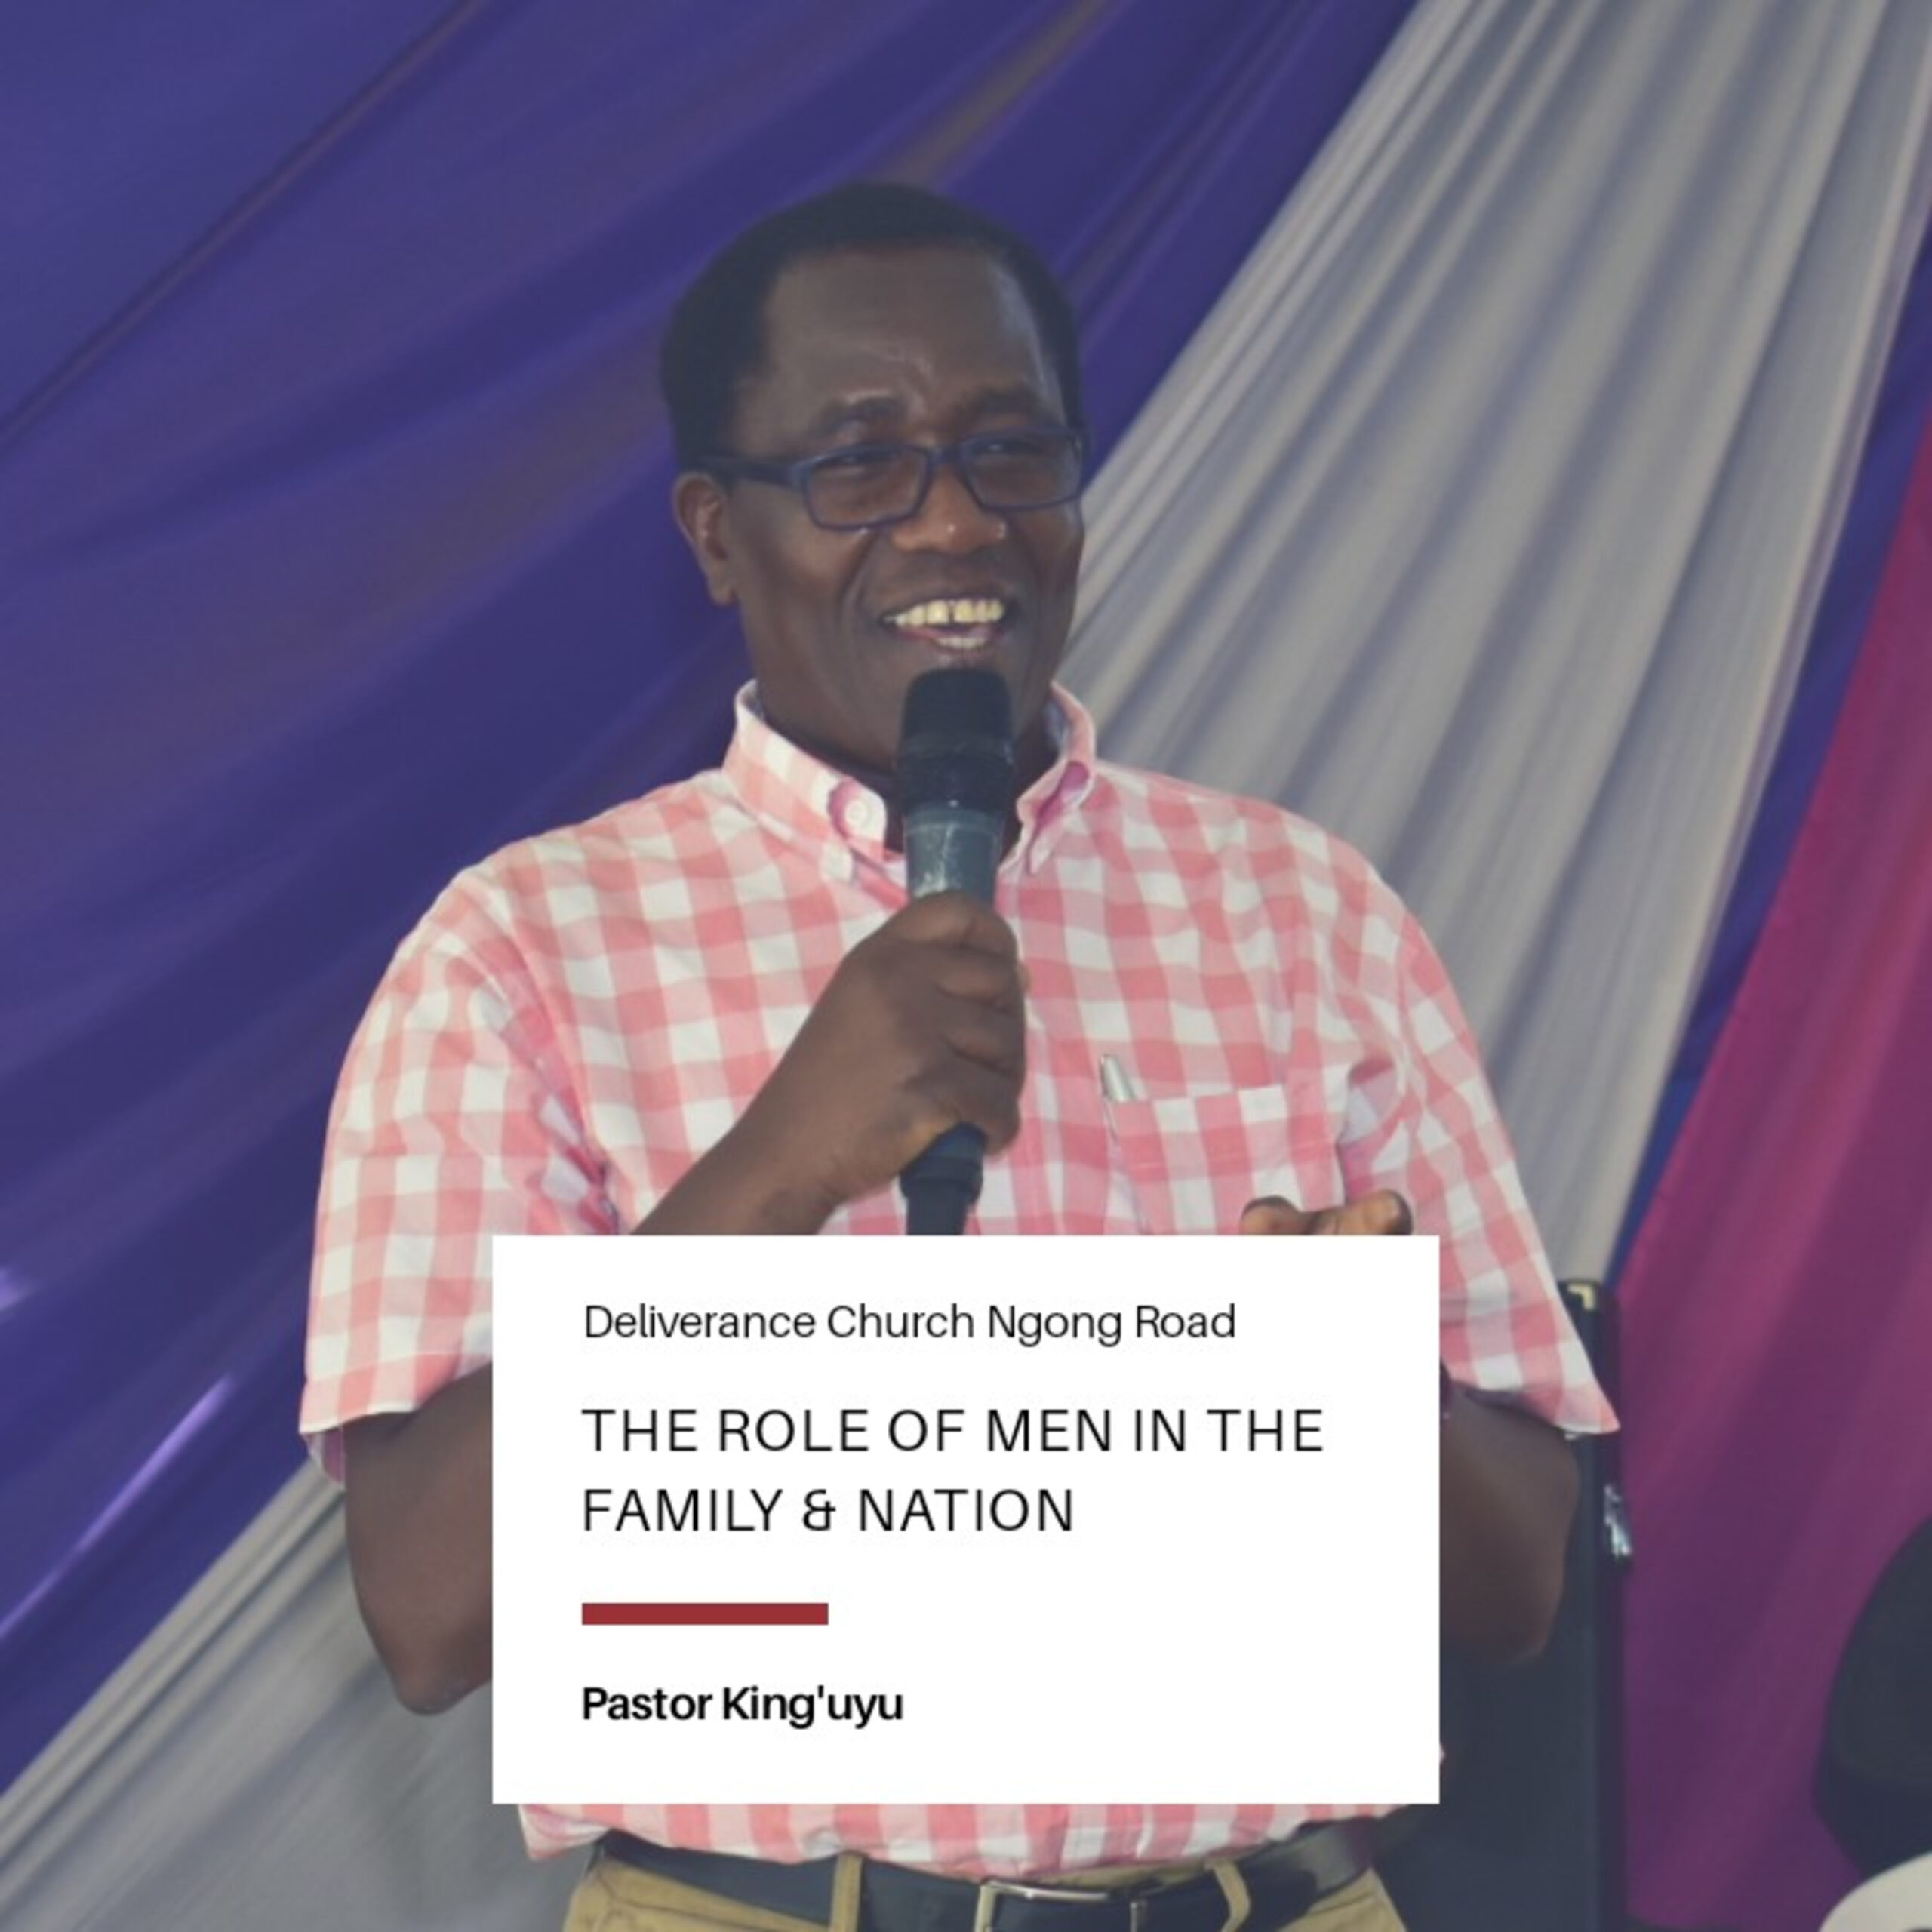 The Role of Men | Pastor King'uyu